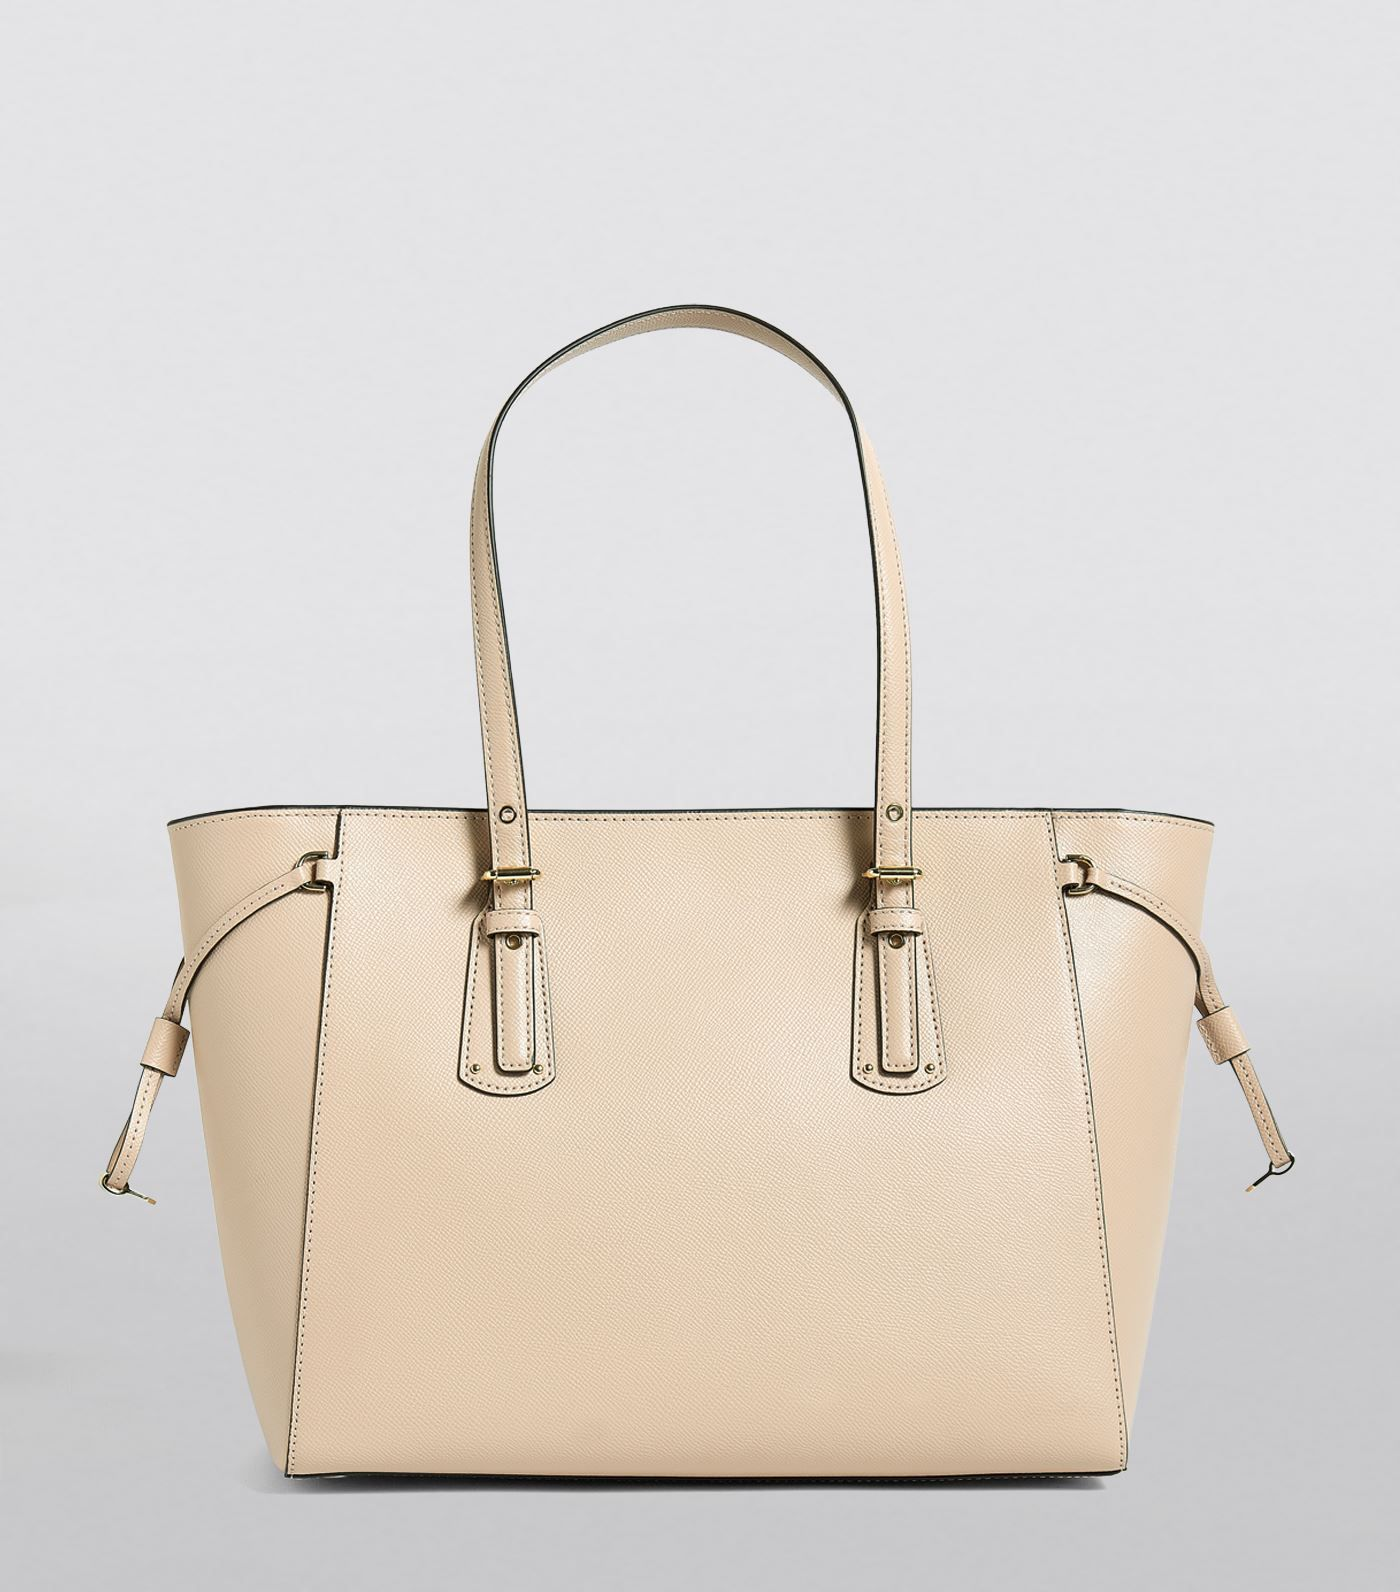 hot sale the best attitude shades of Leather Voyager Tote Bag   Bags, Michael kors, Tote bag